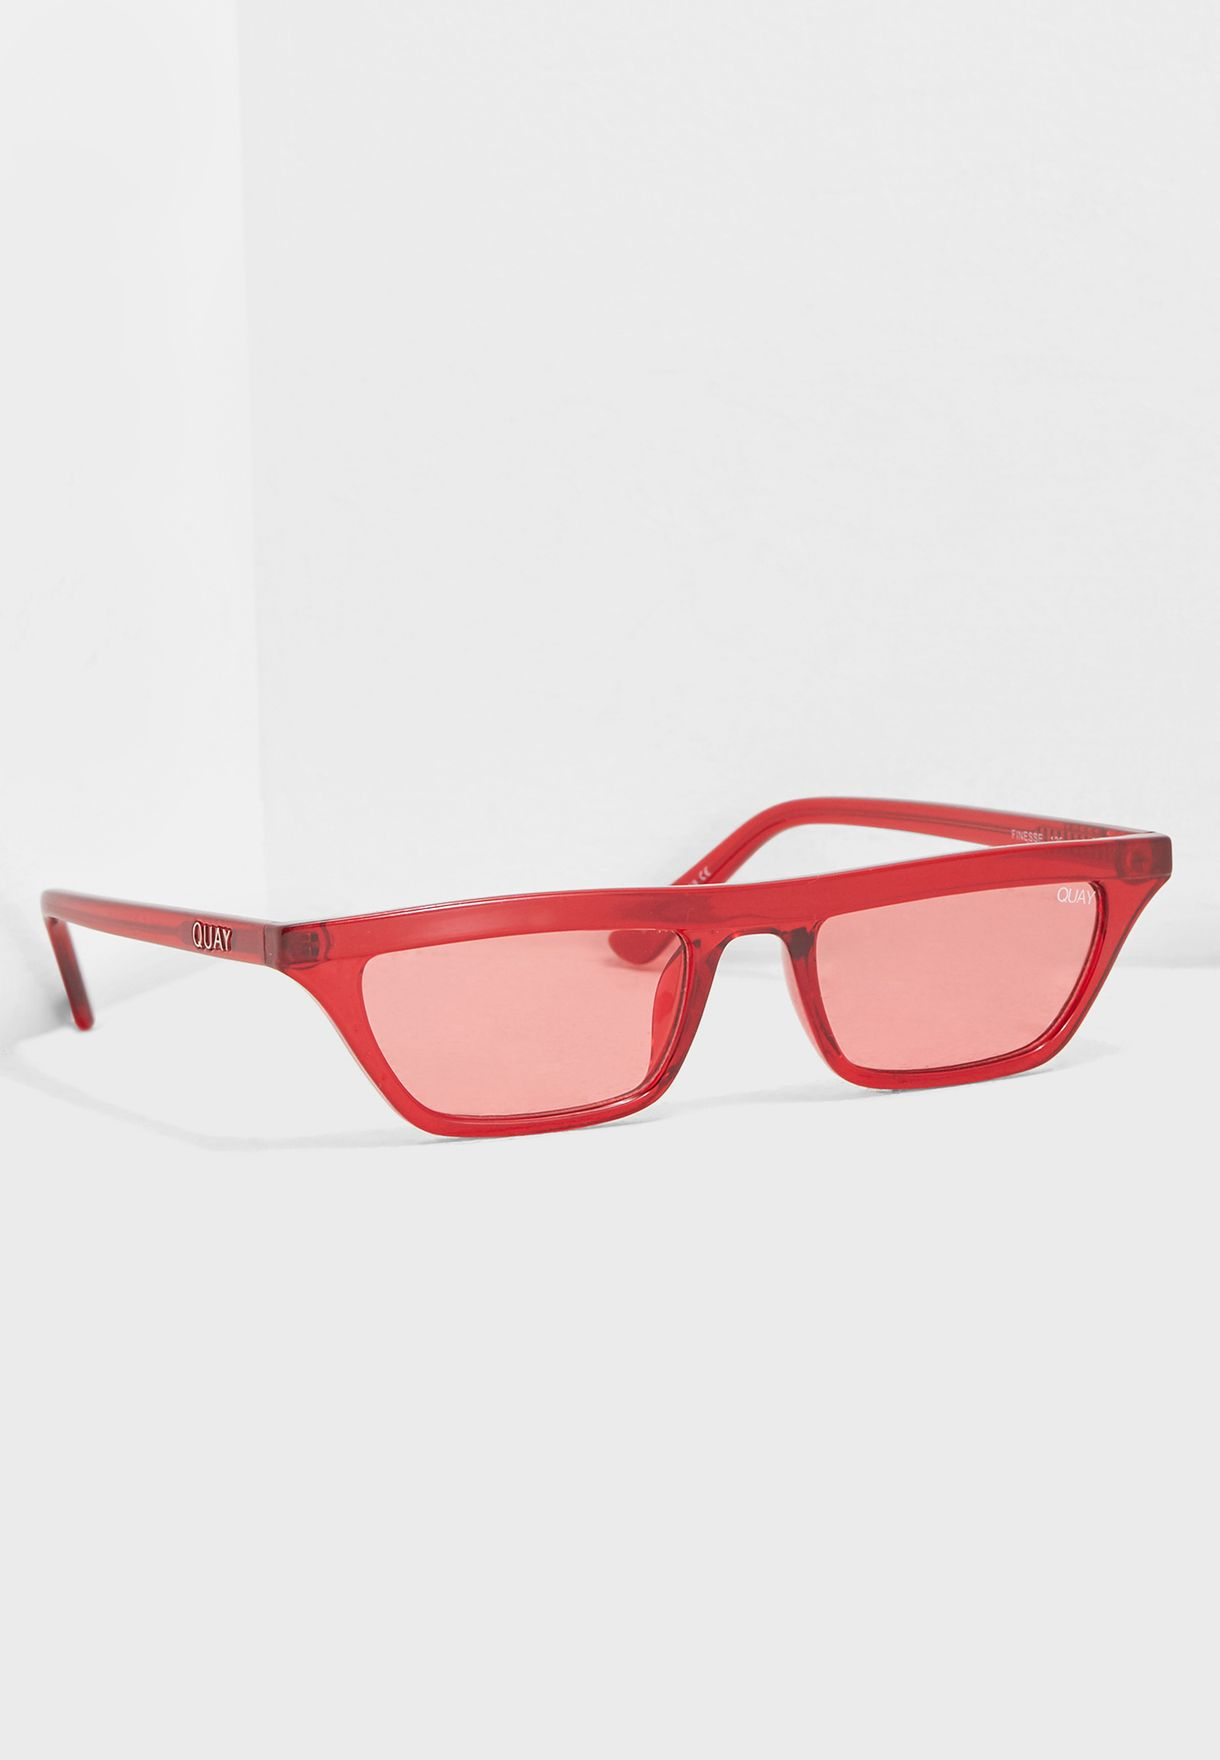 93915a616b Shop Quay Australia red Finesse Sunglasses QW-000383-RED RED for ...